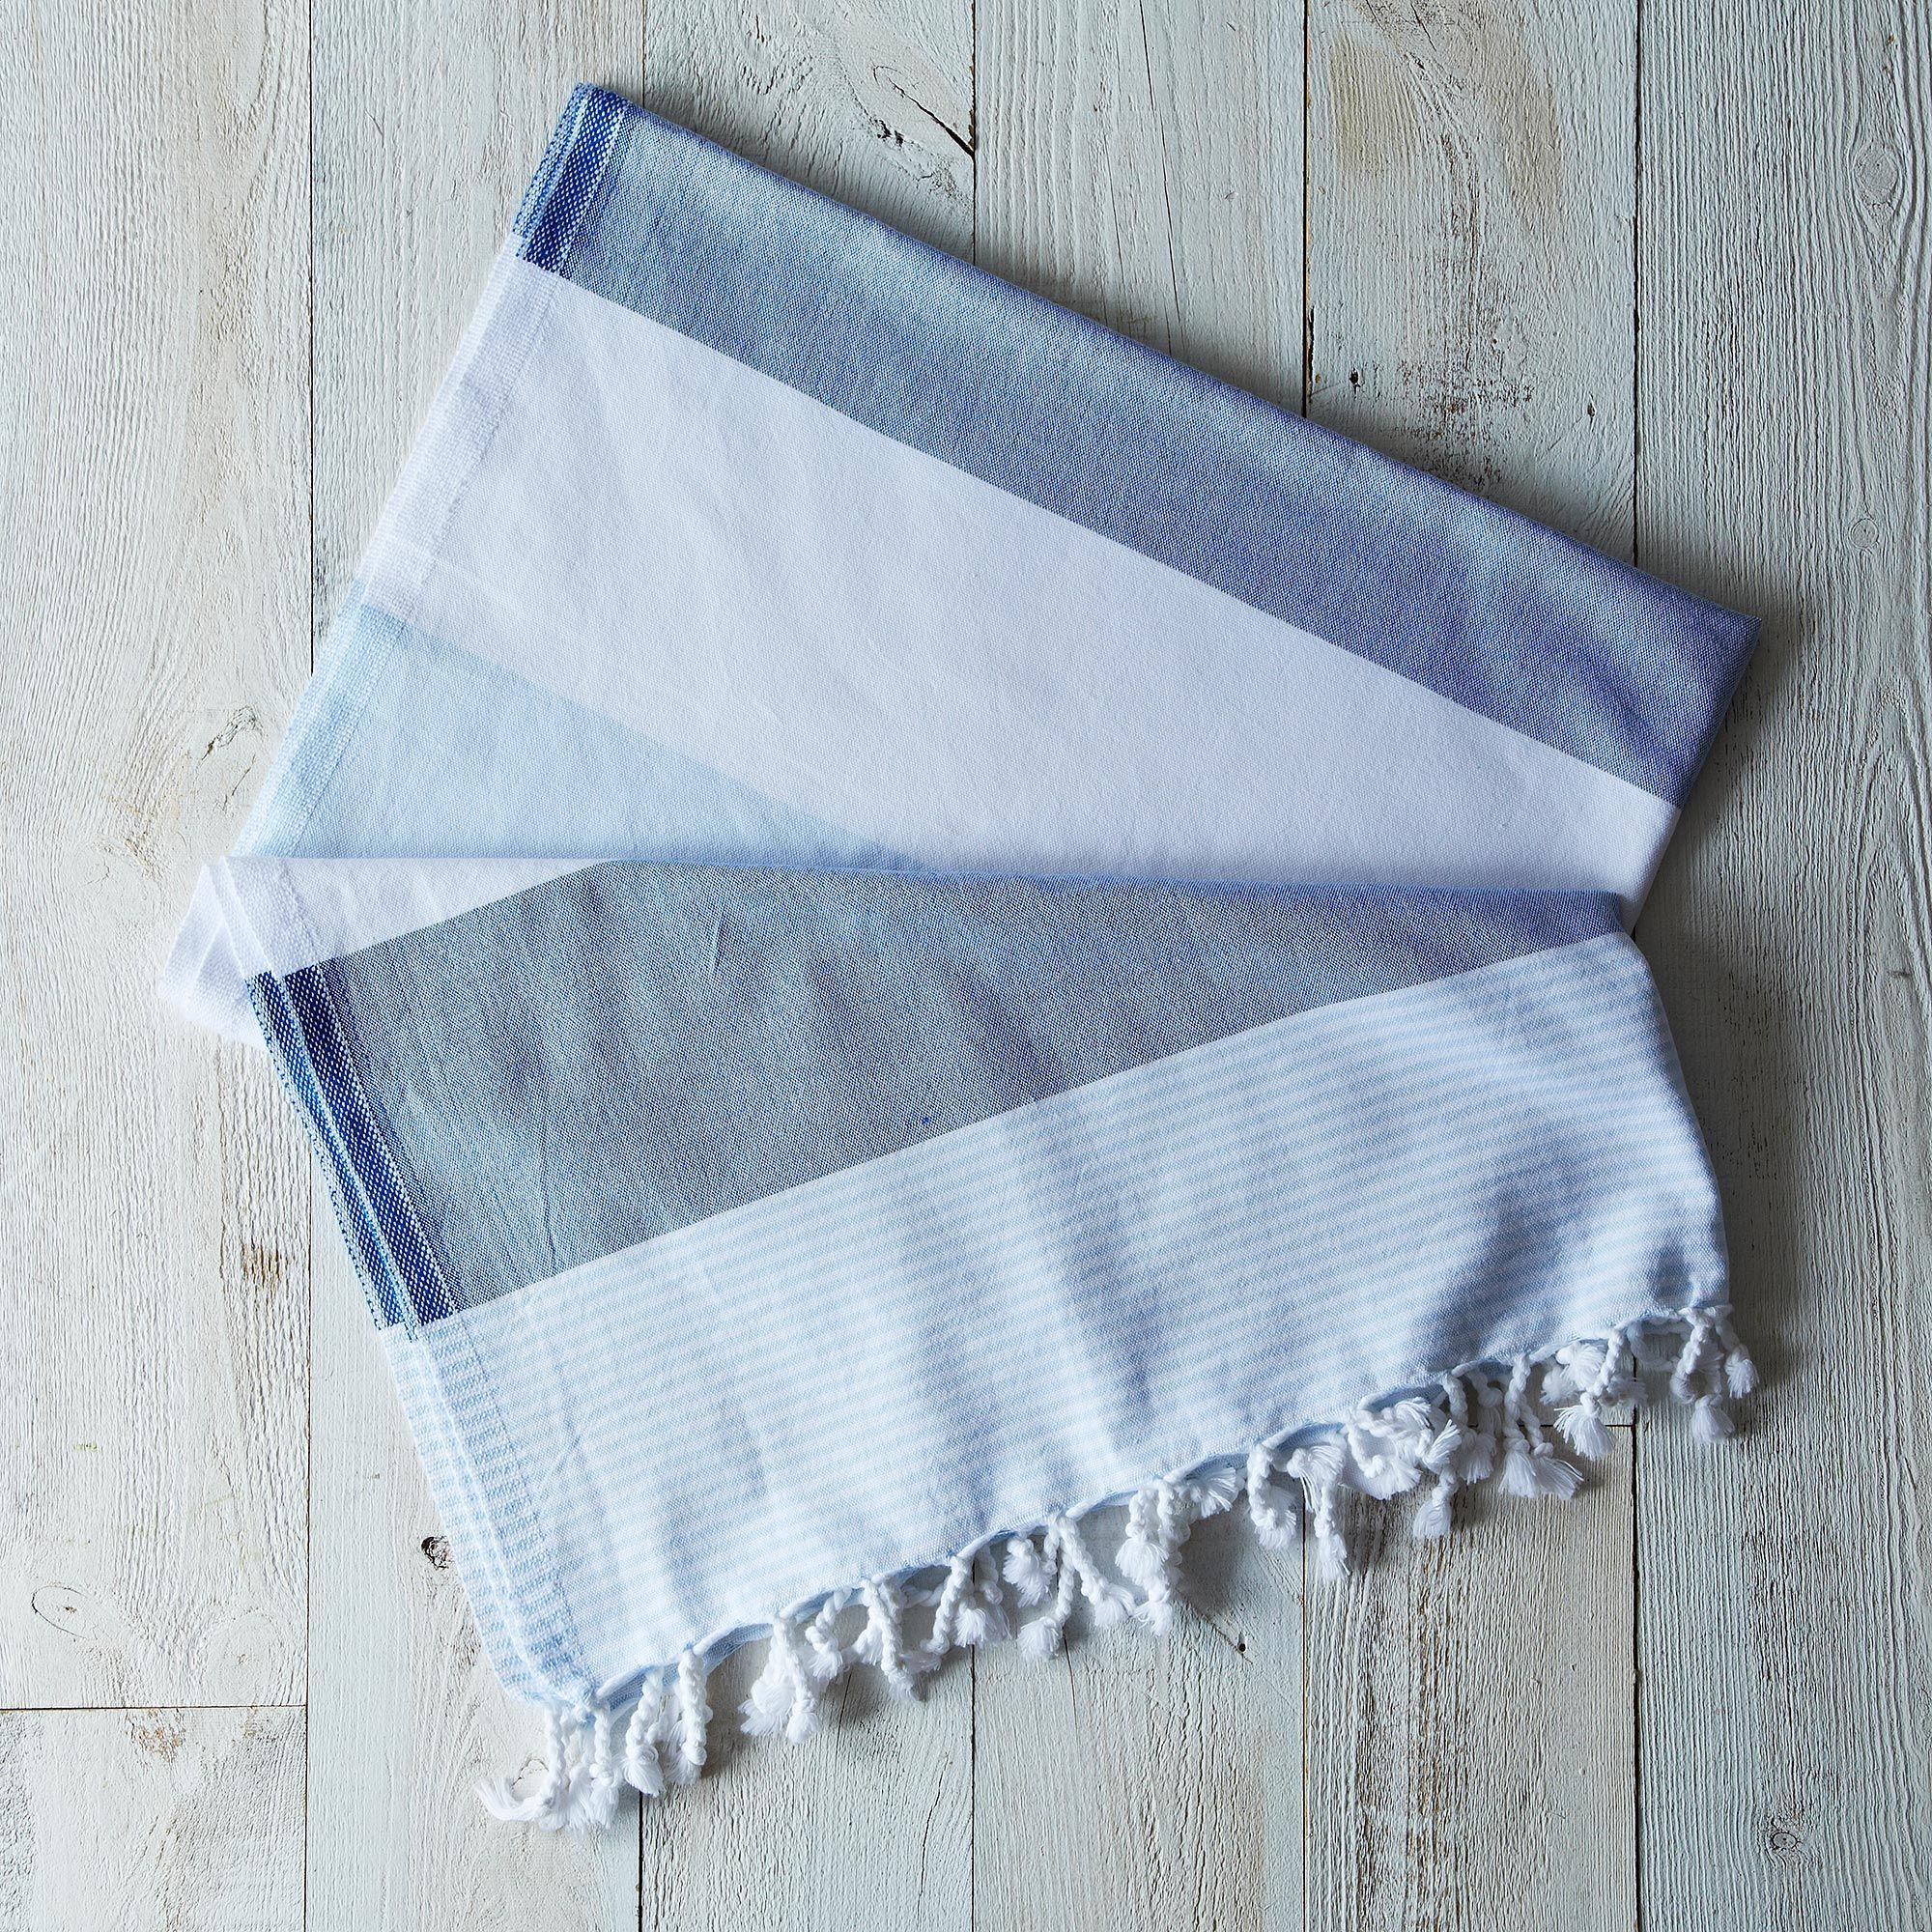 F5f27e76 a0f4 11e5 8f14 0ef7535729df  2013 0711 ella lou handwoven turkish towel blue marine 025